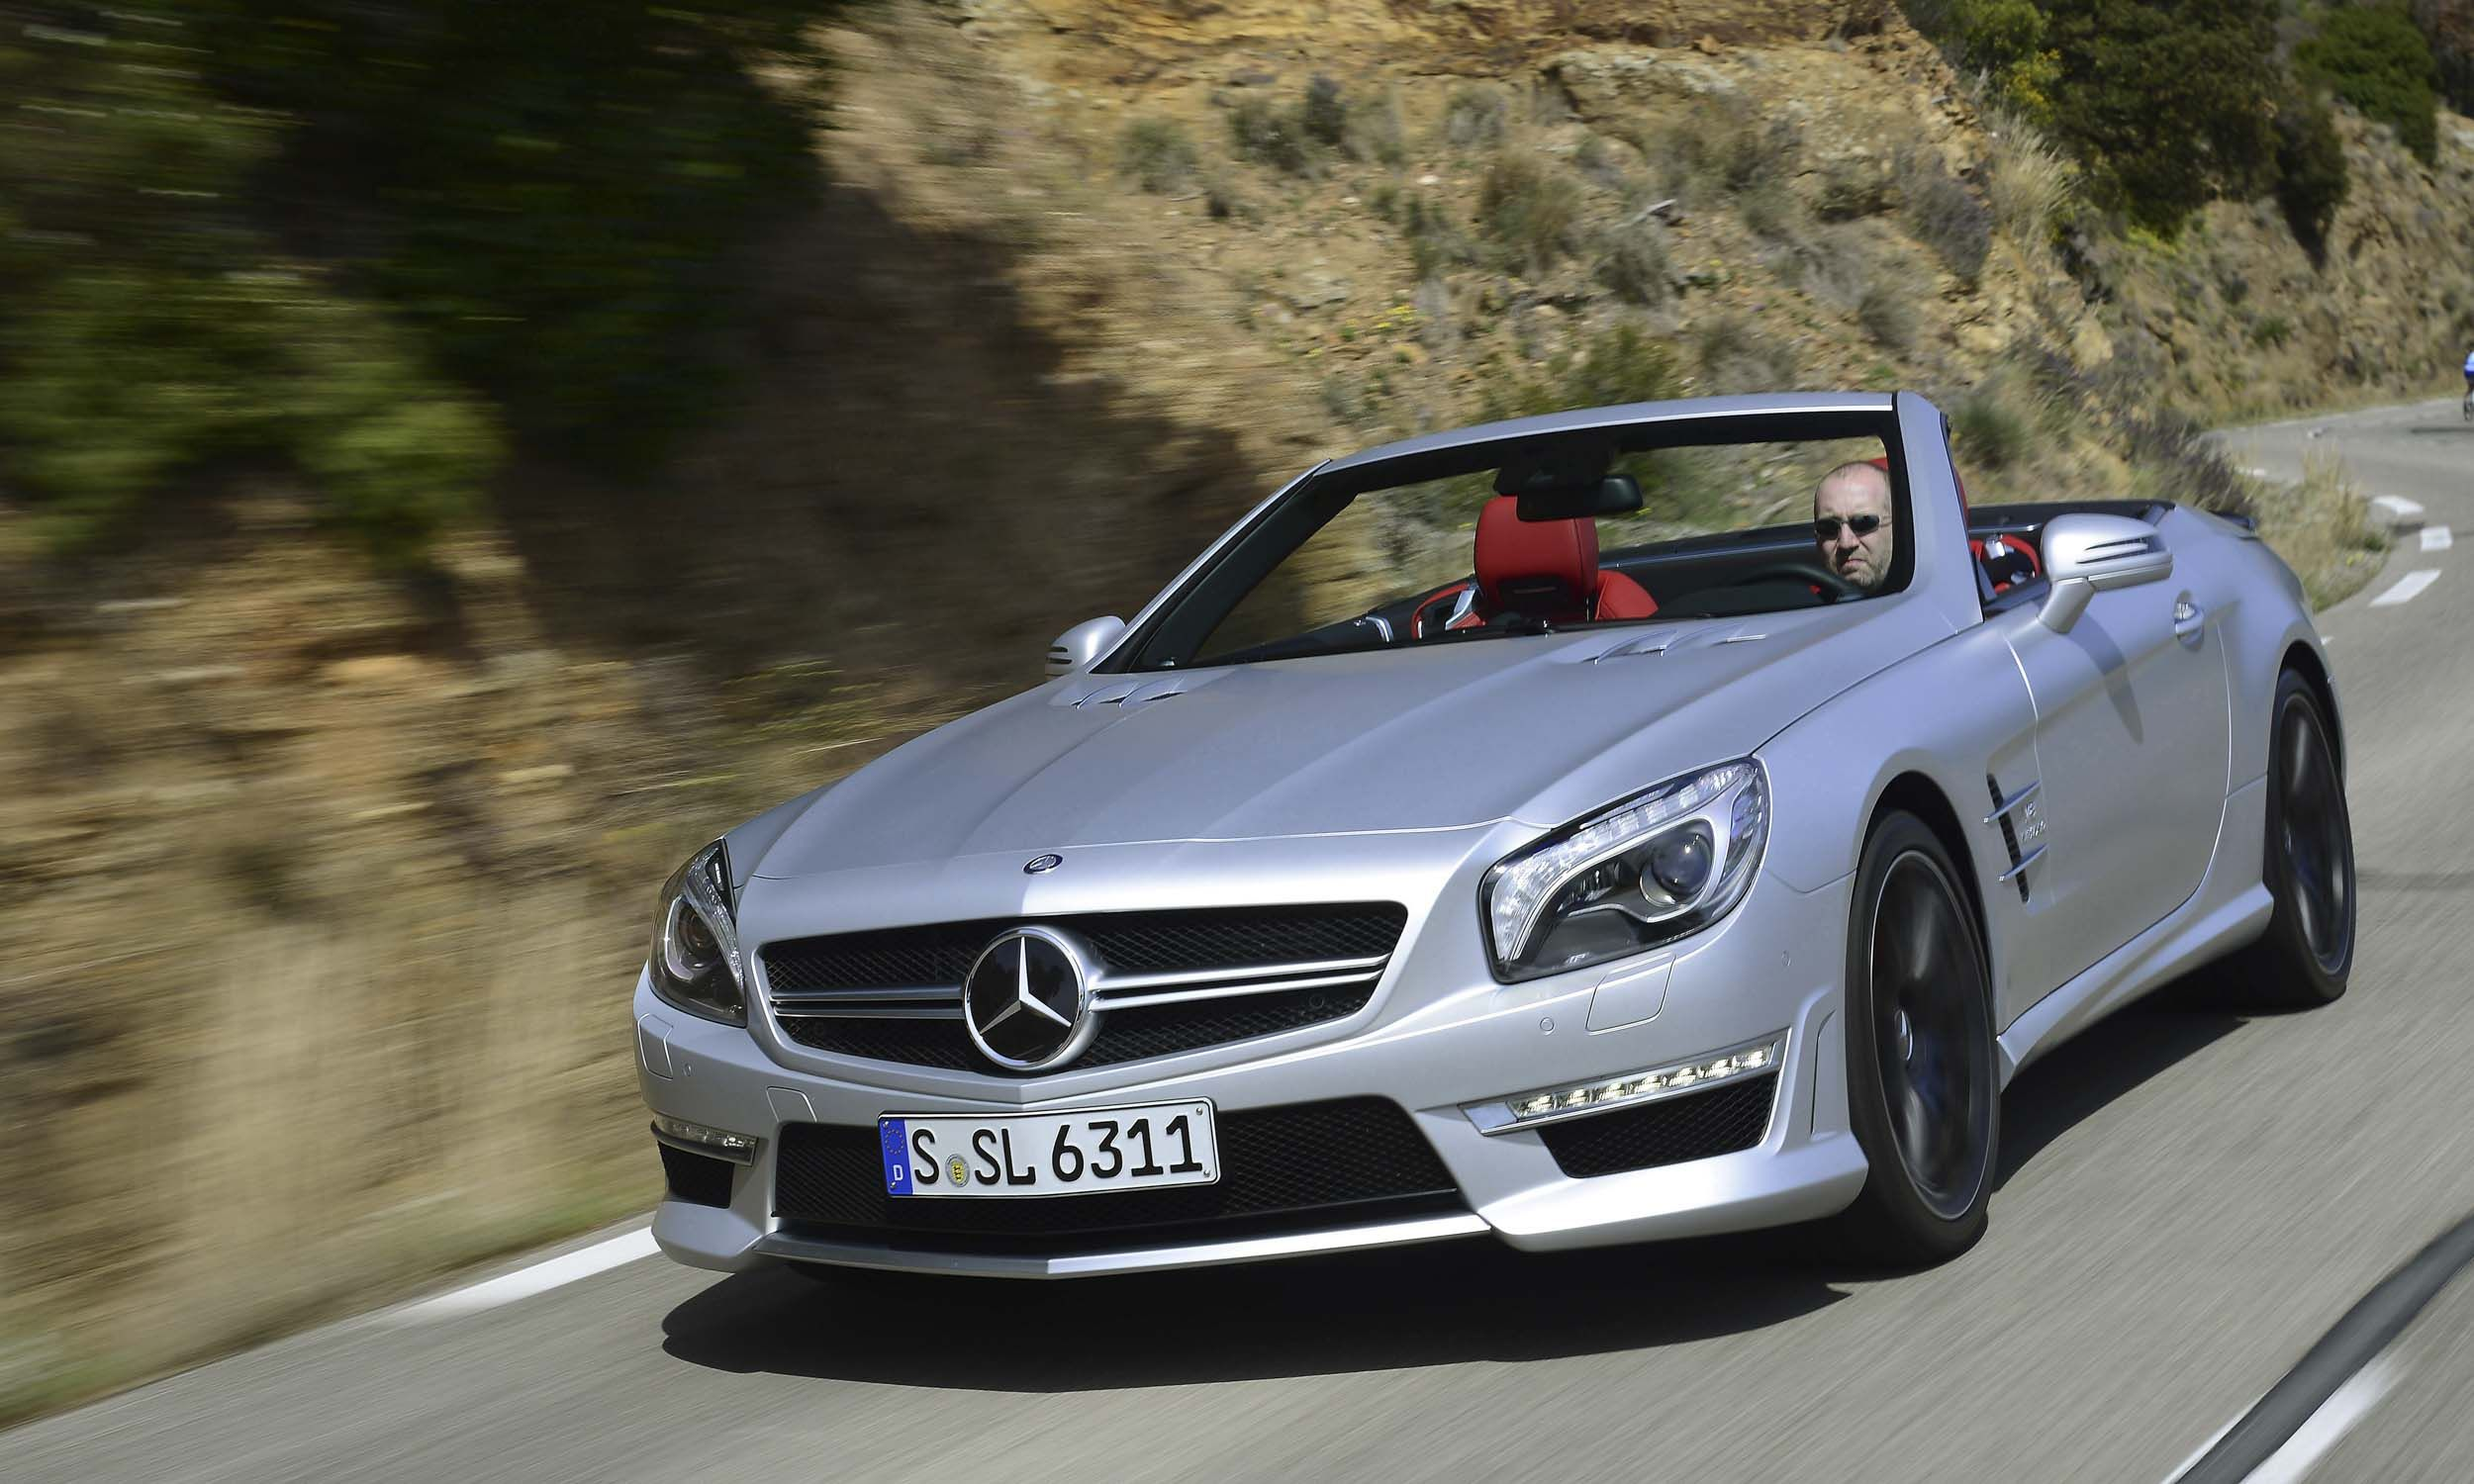 Best 2 Seat Sun Chasers Of 2015 Mercedes Convertible Used Car